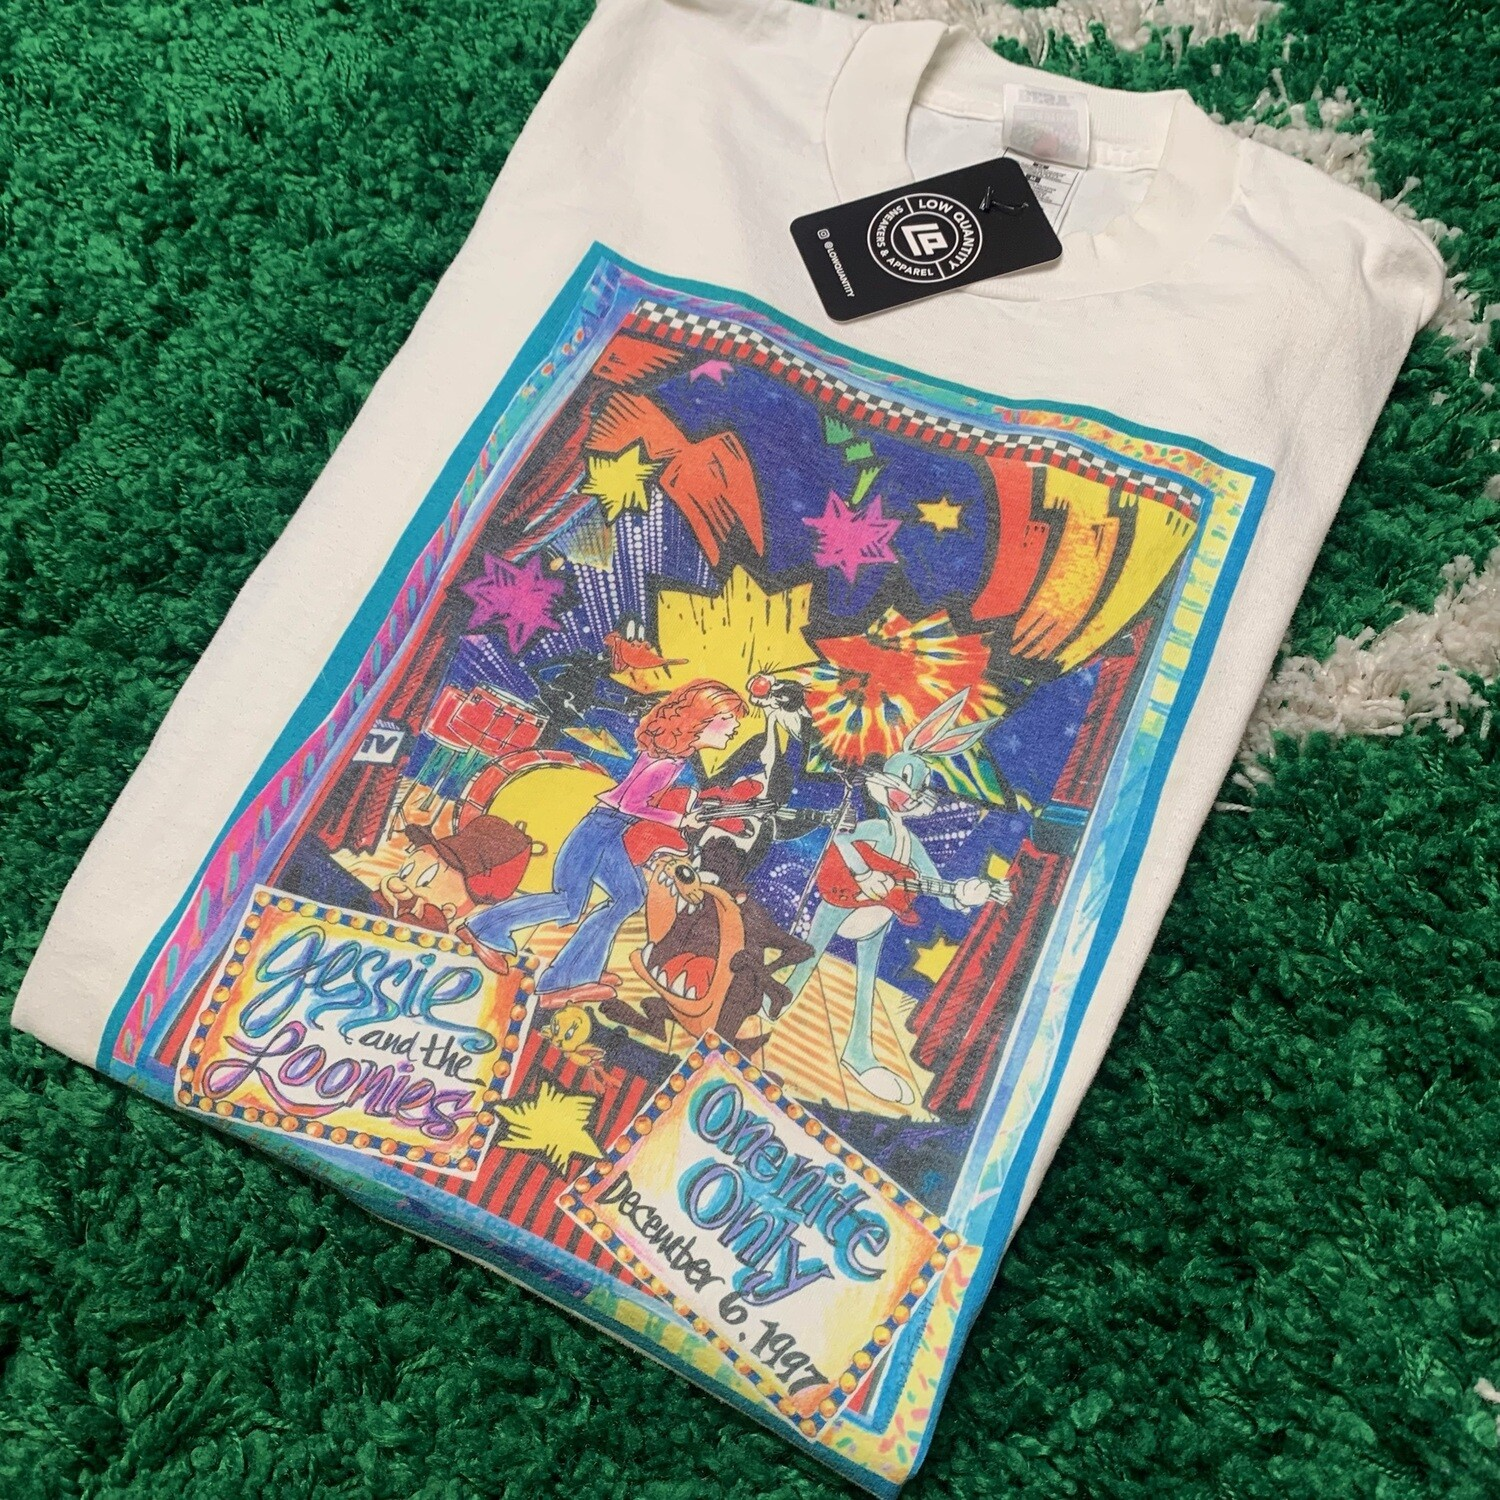 Jessie and the Loonies Size Medium